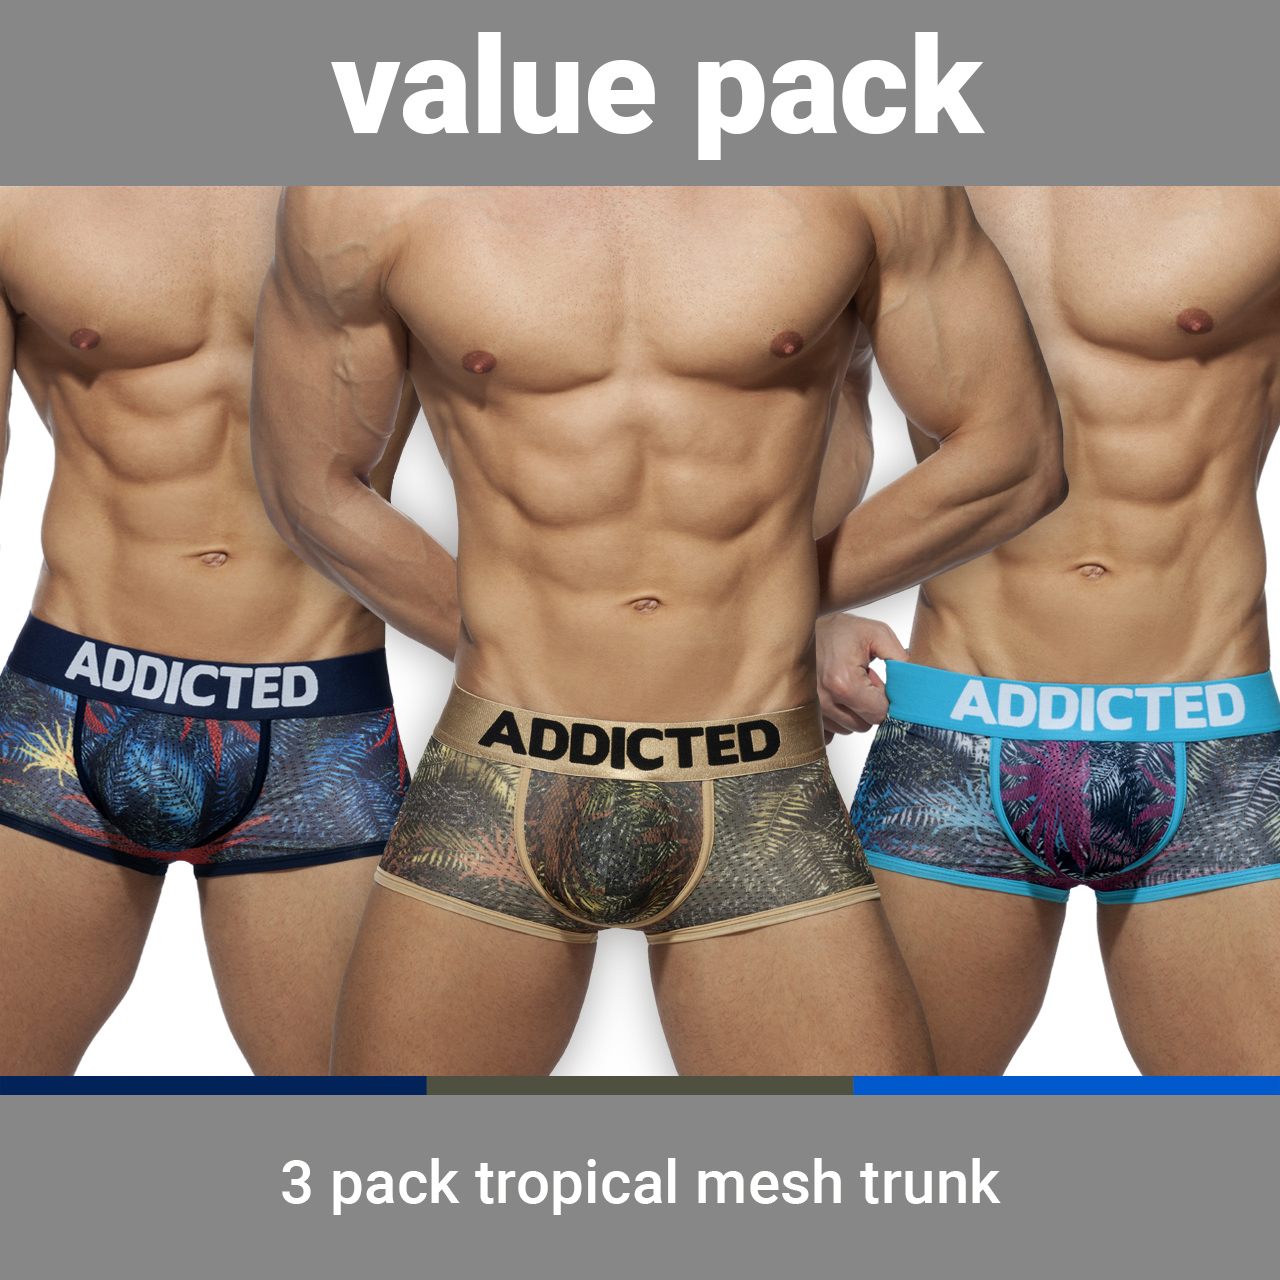 3 PACK TROPICAL MESH TRUNK PUSH UP 3 COLORES